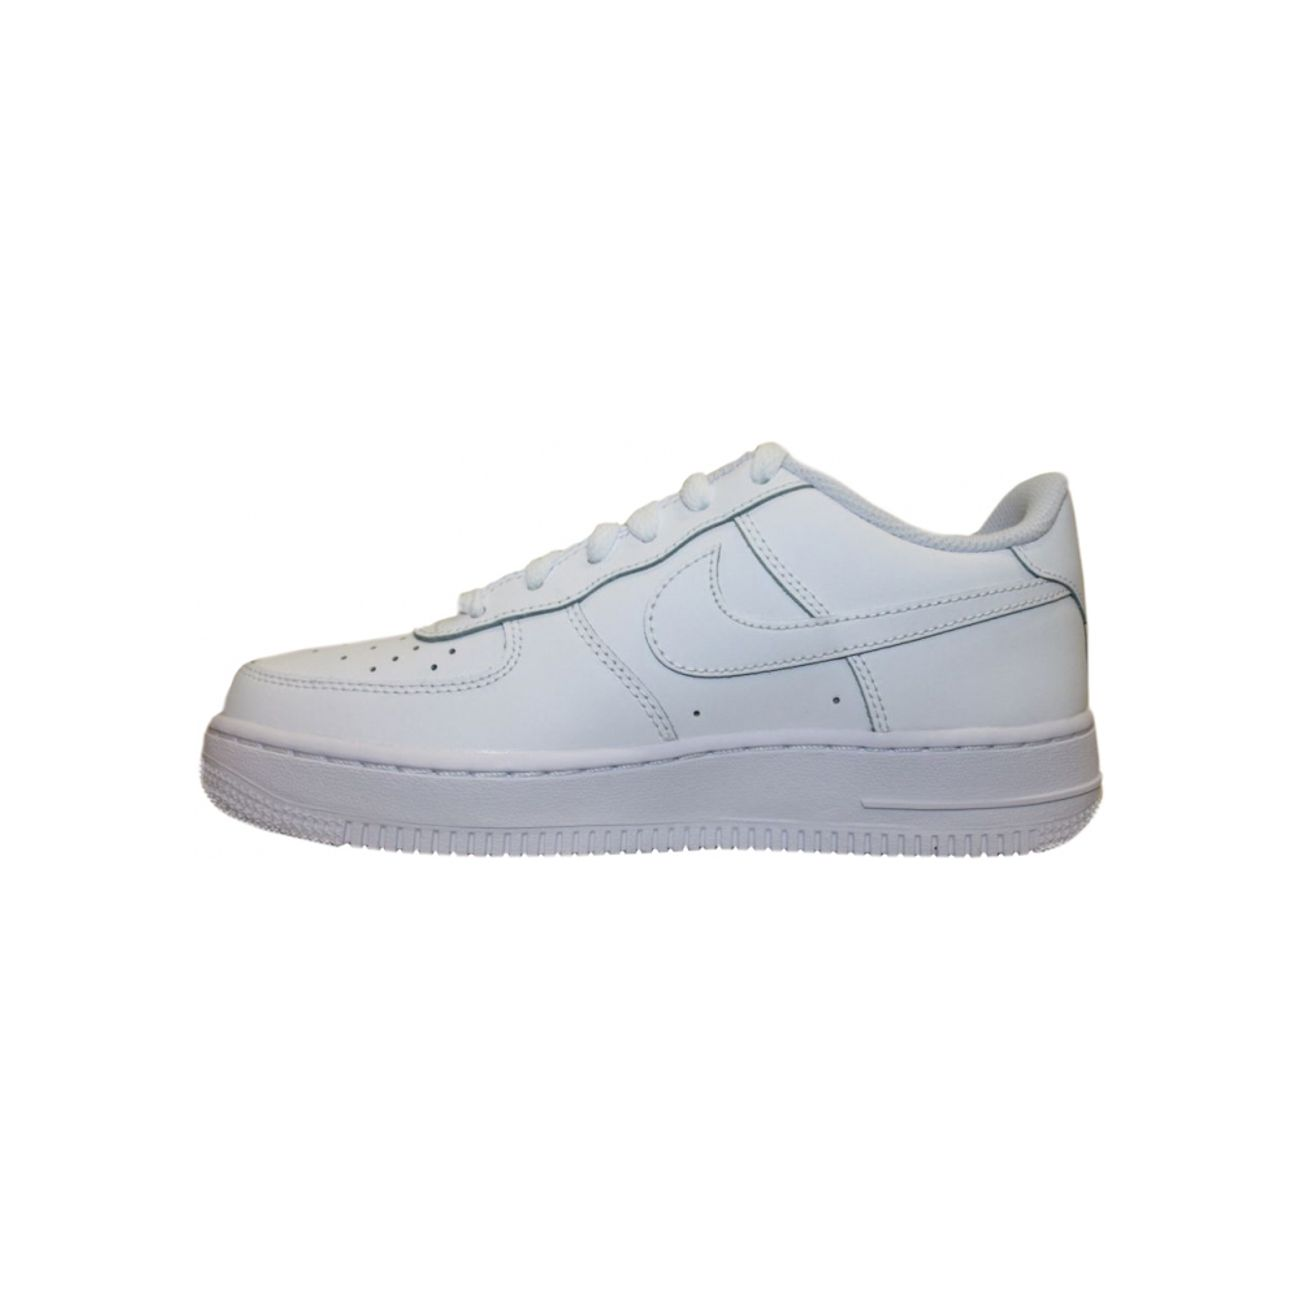 Mode- Lifestyle femme NIKE Nike Air Force 1 GS